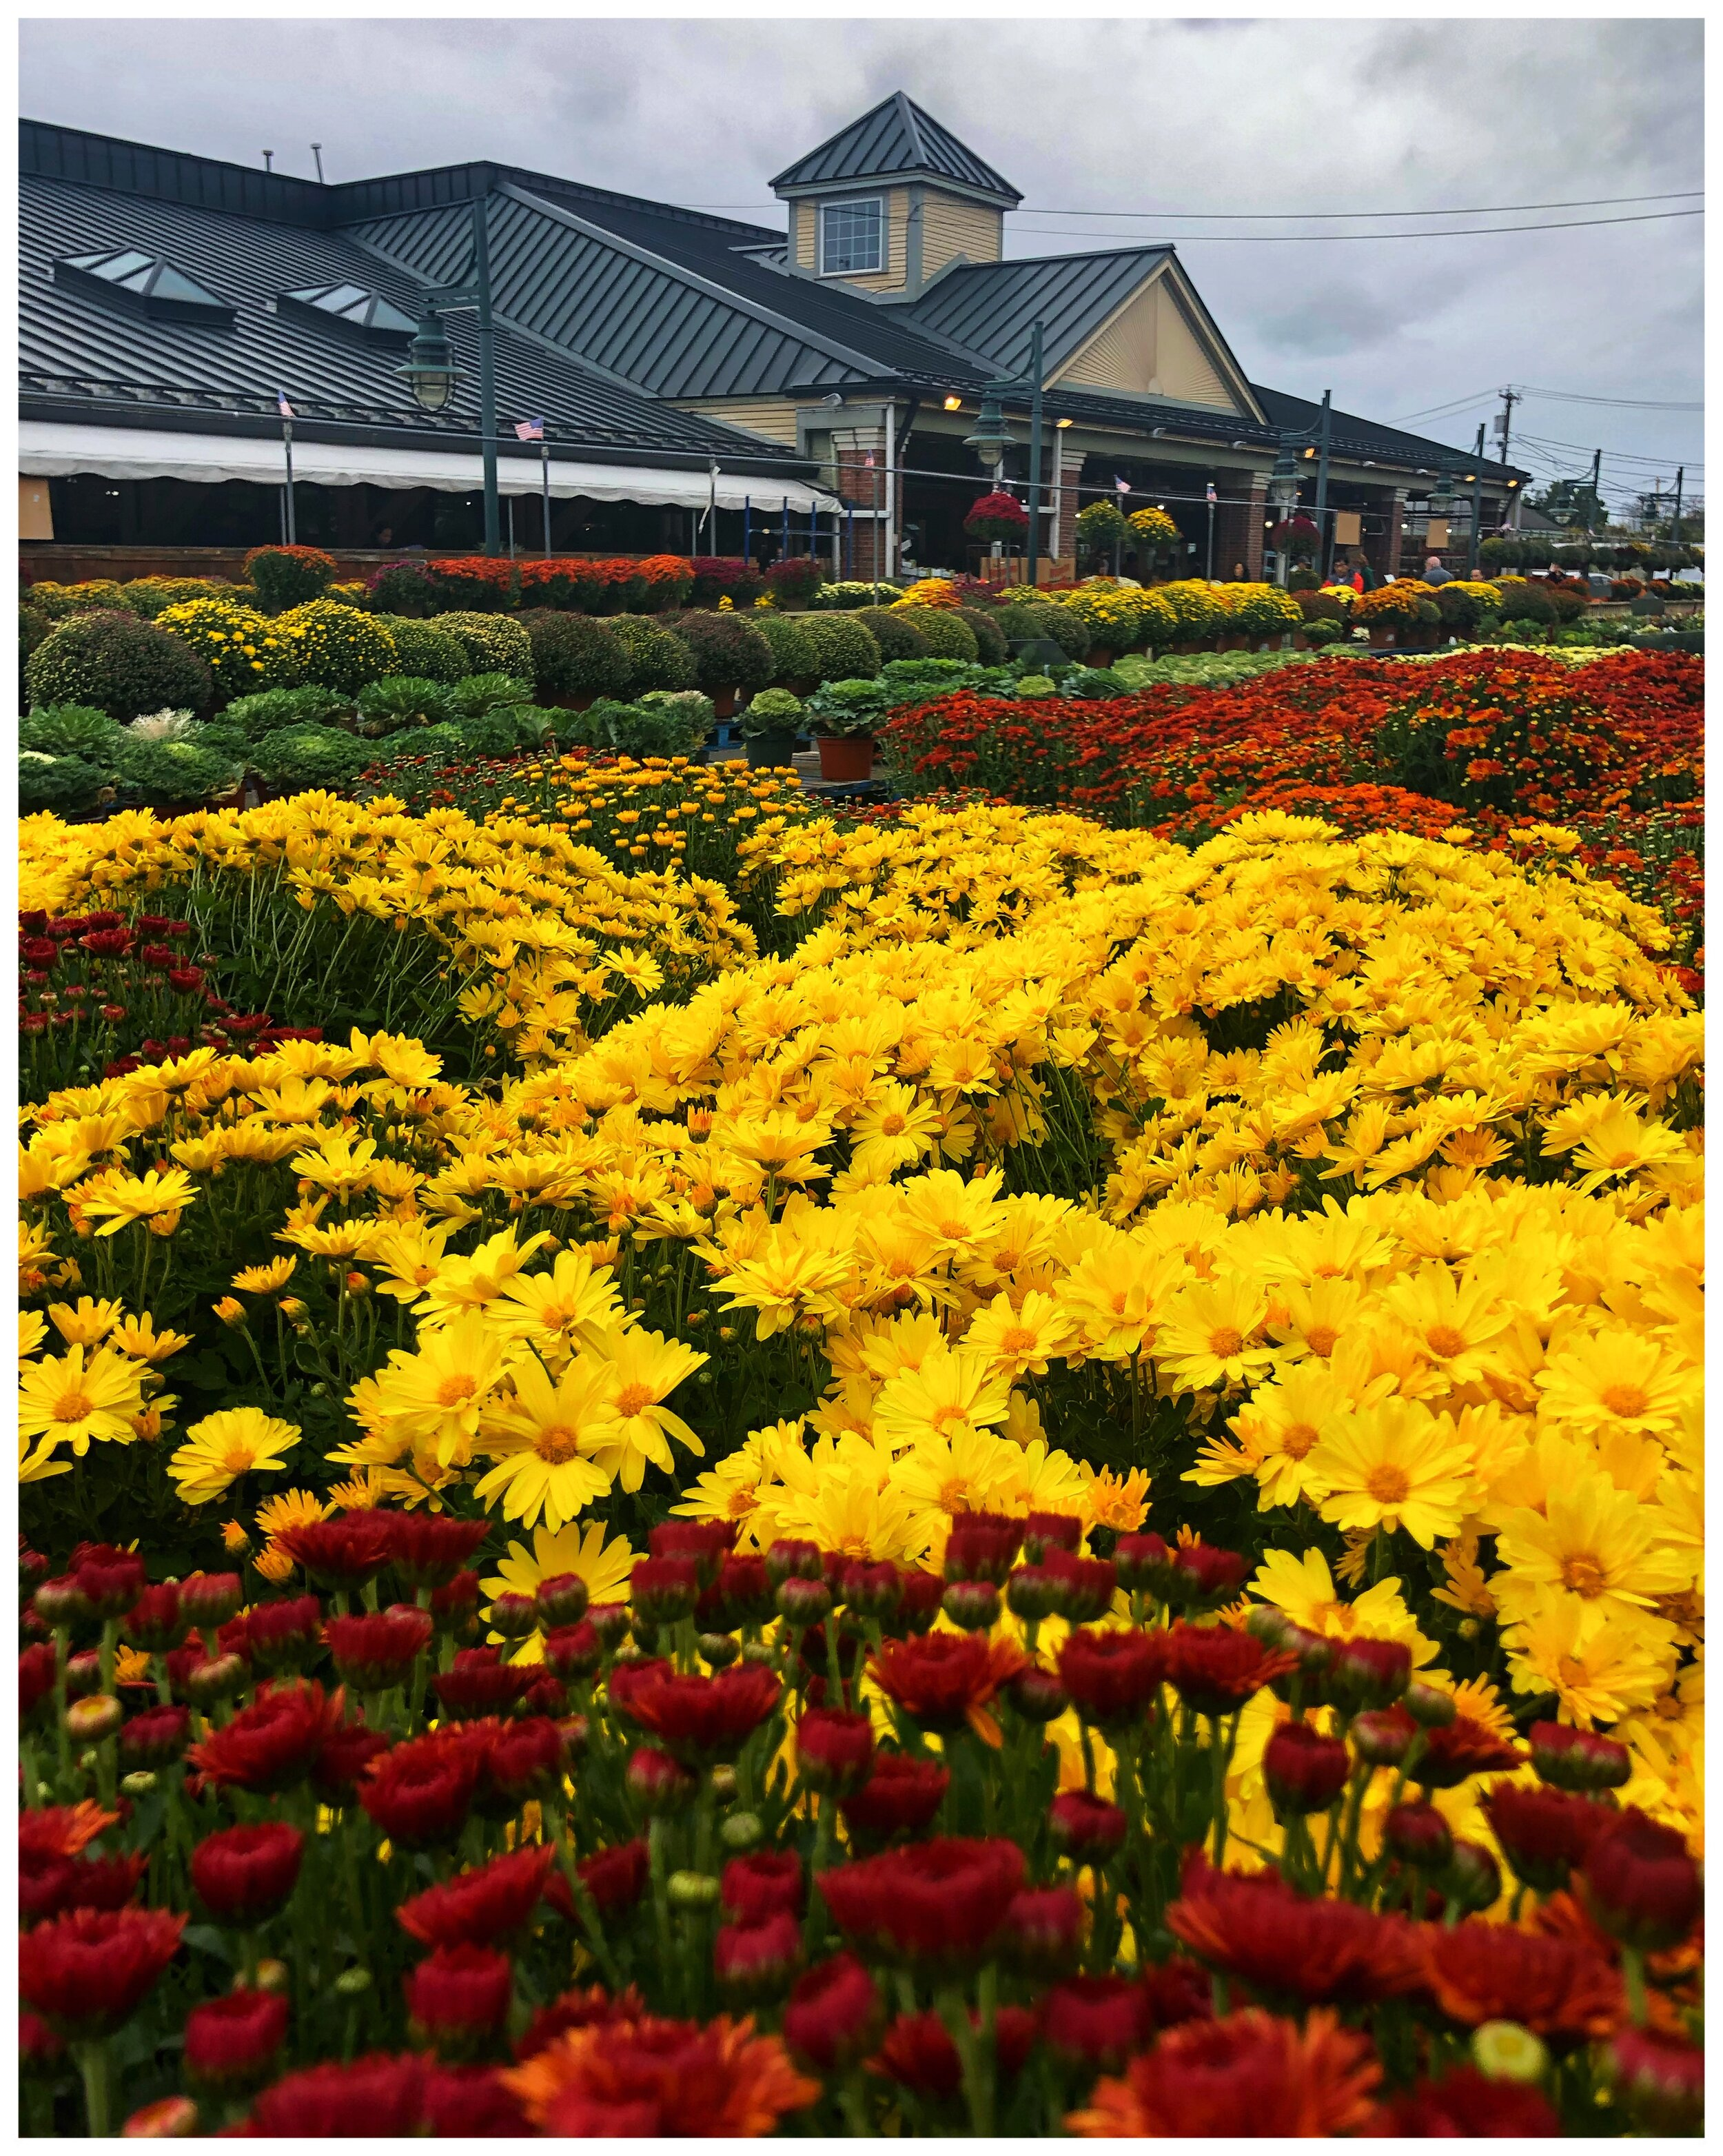 Mums in glorious fall colors at our store!